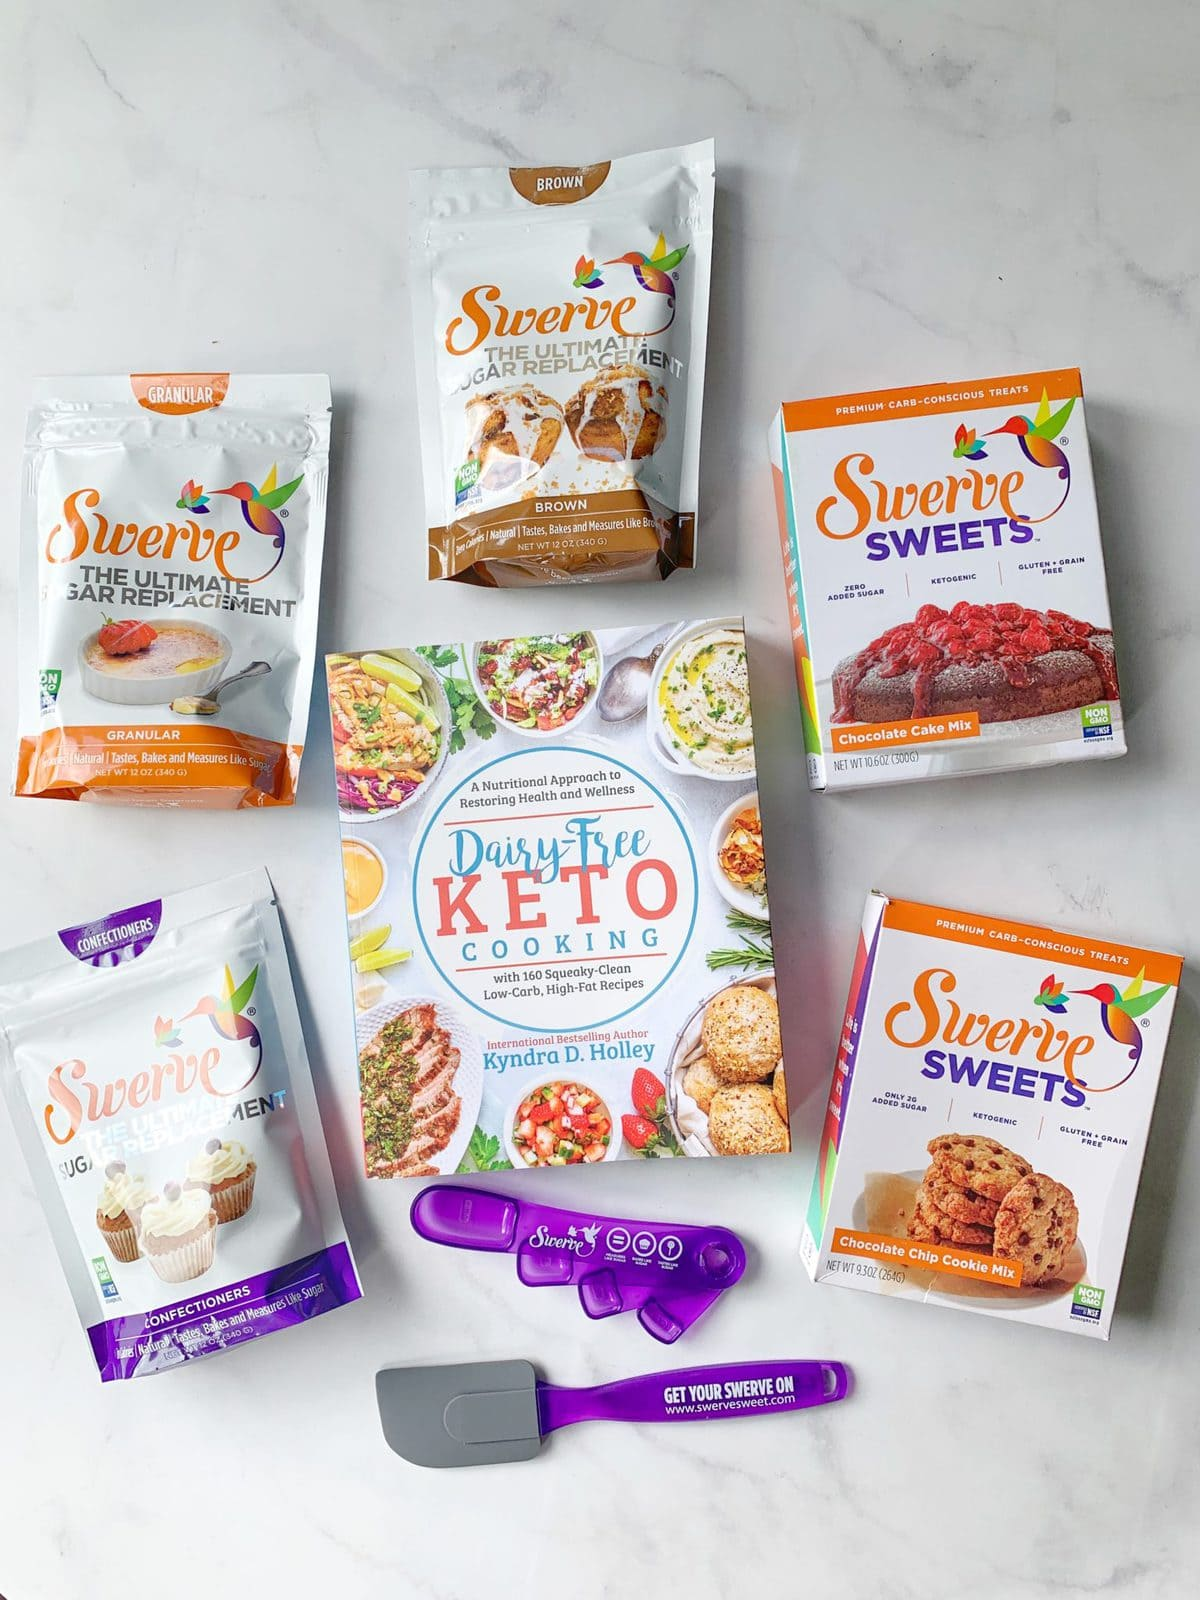 Dairy Free Keto Cooking GIVEAWAY Extravaganza - 11 Weeks of giveaways for the launch of my new book. Swerve